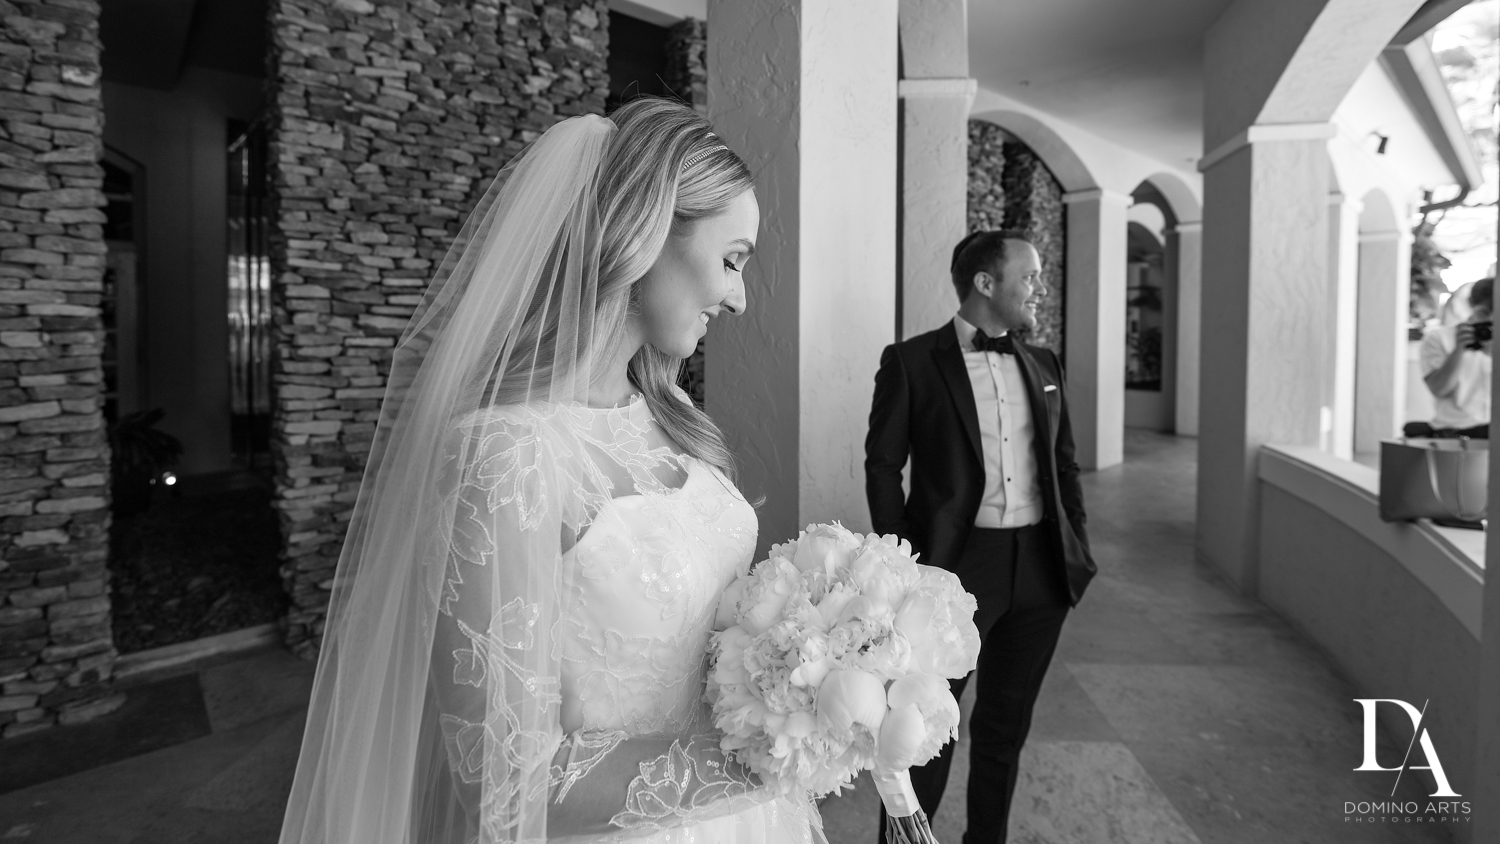 B&W wedding photos at aventura turnberry by domino arts